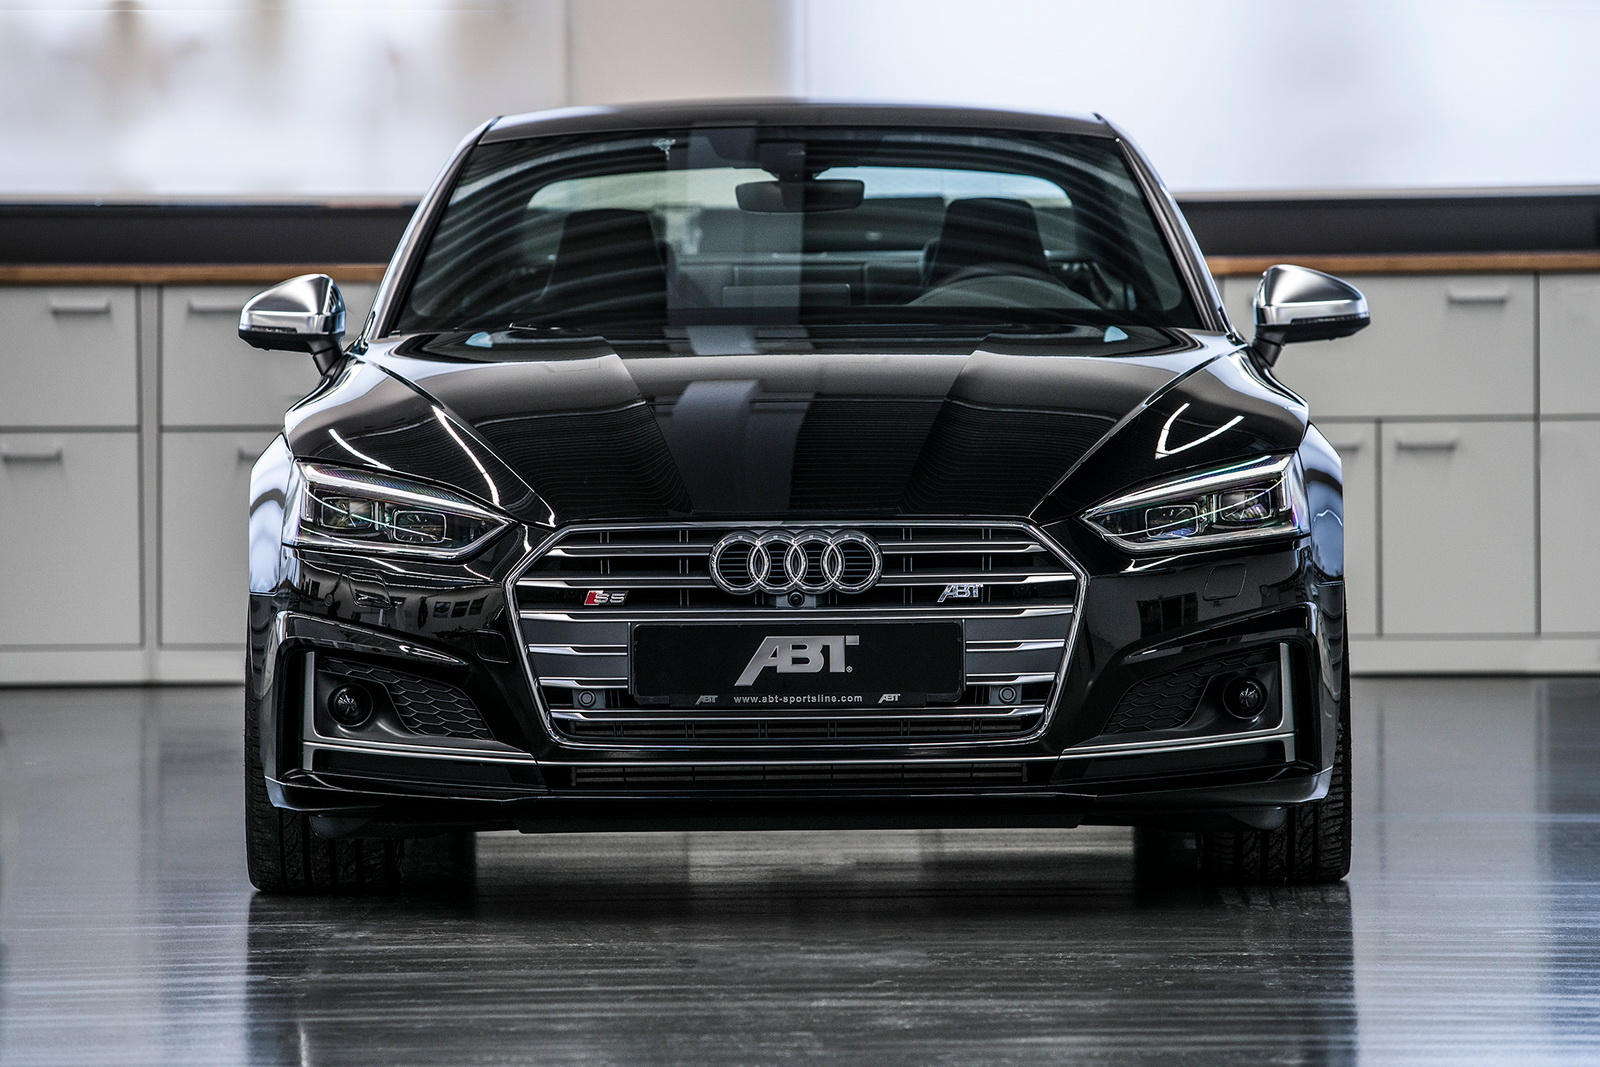 ABT S5 Coupe by ABT (6)